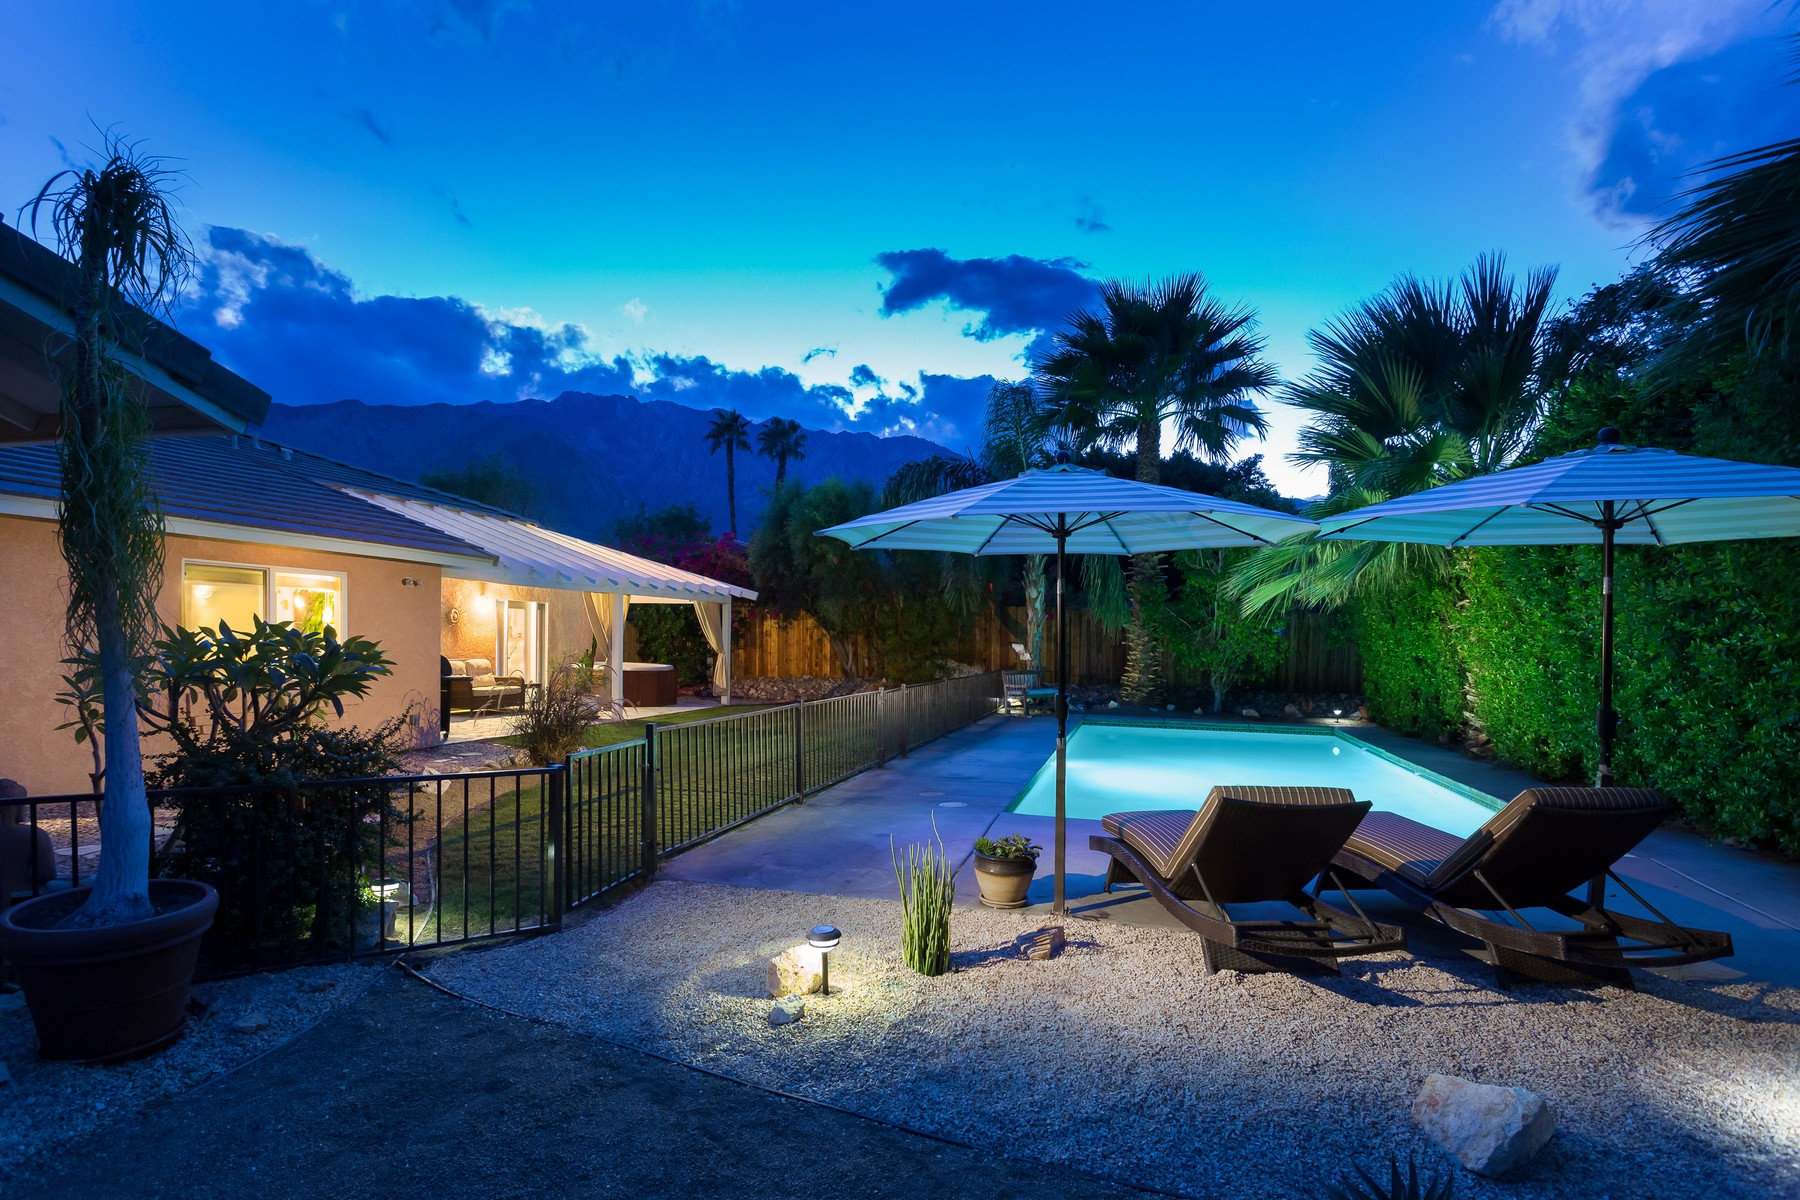 Single Family Home for Sale at 468 West Santa Catalina Road Palm Springs, California 92262 United States